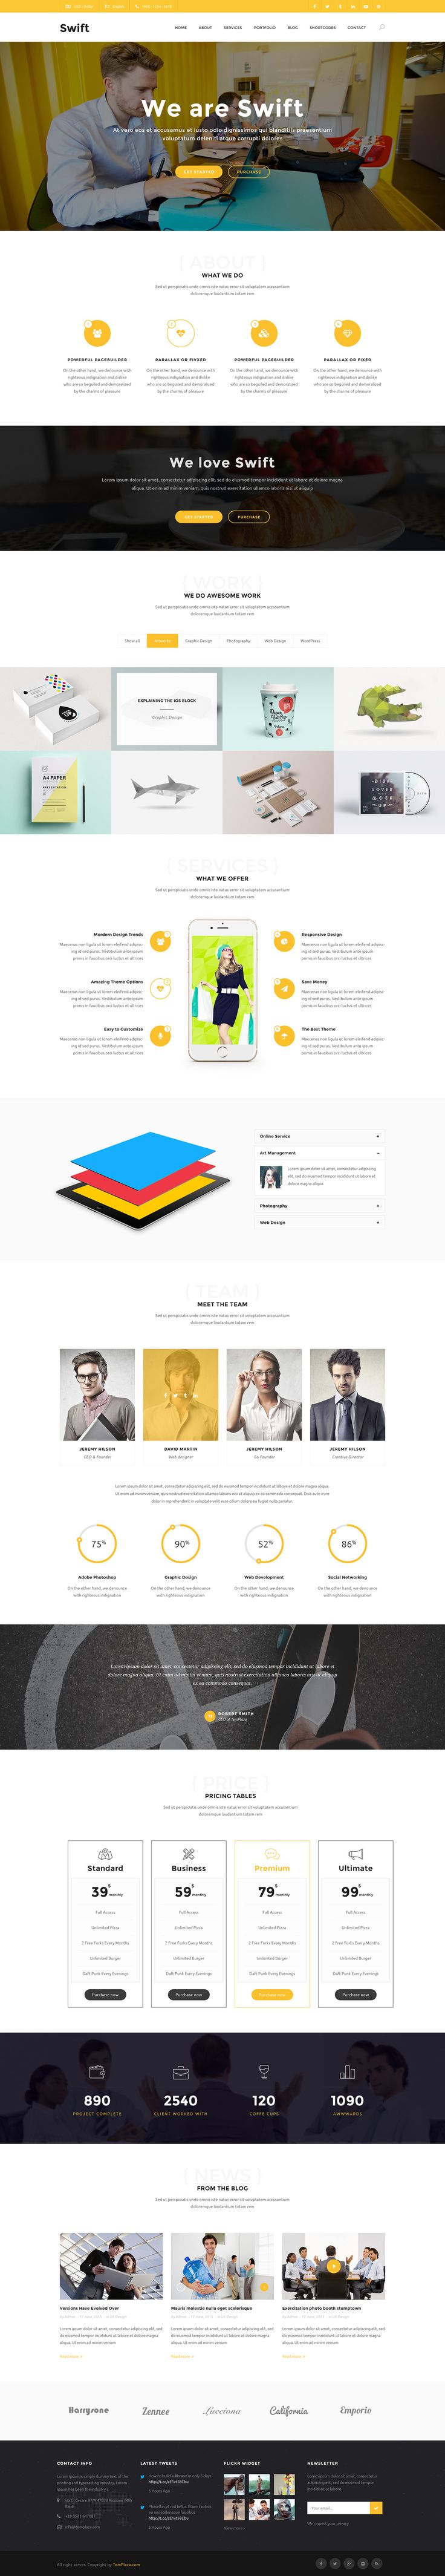 Swift is a WordPress Theme which can be suitable for Blog, Business, Personal and Portfolio website. This theme is enhanced with custom demo contents and beautiful styles.